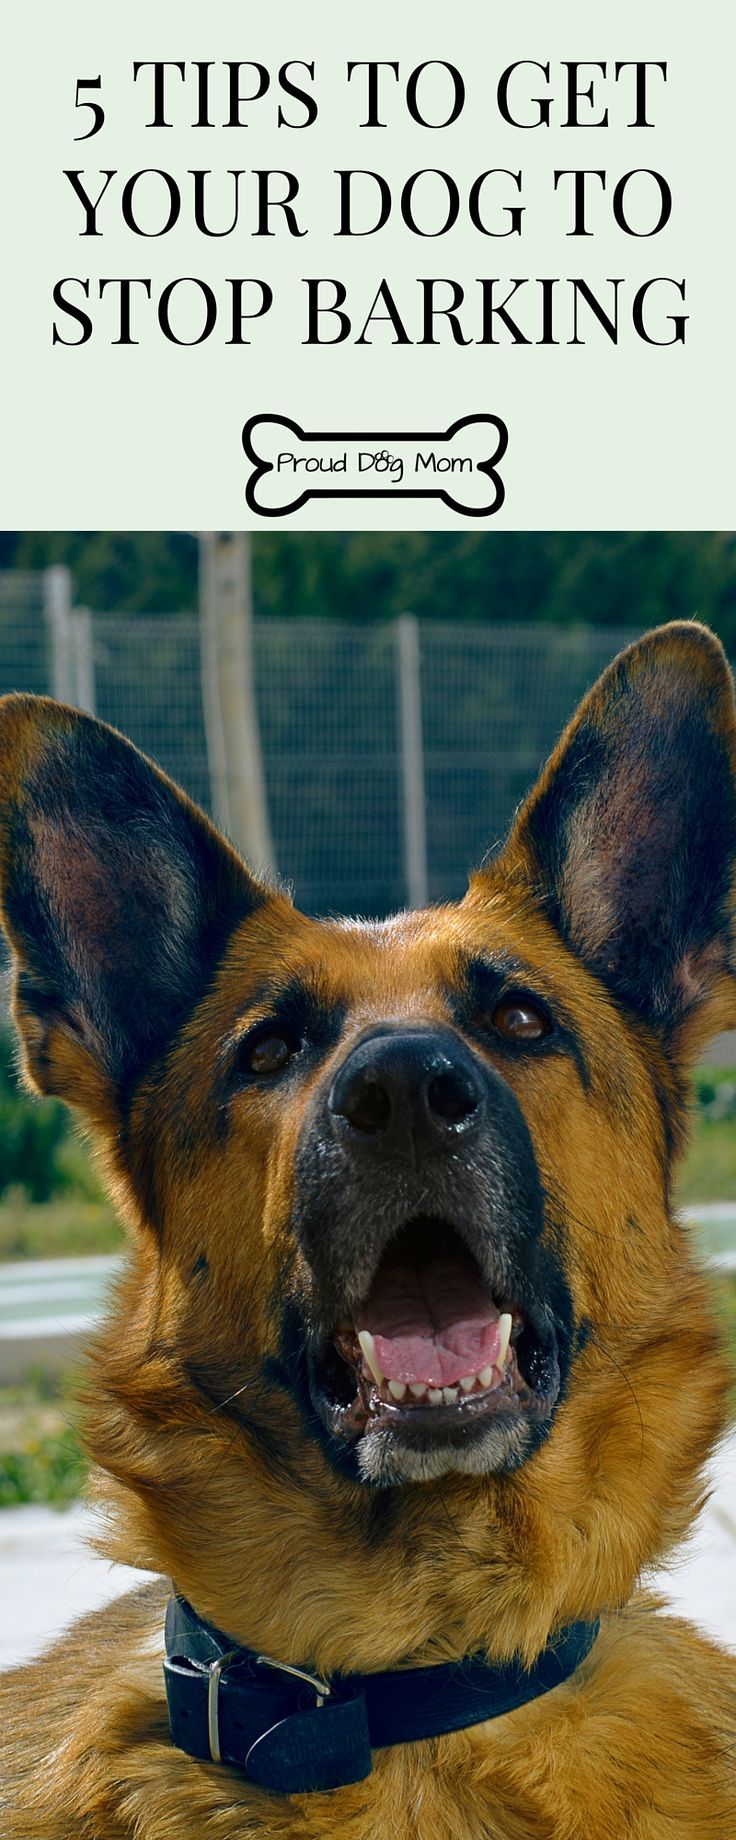 5 tips to get your dog to stop barking - Best Way To Stop A Dog From Barking